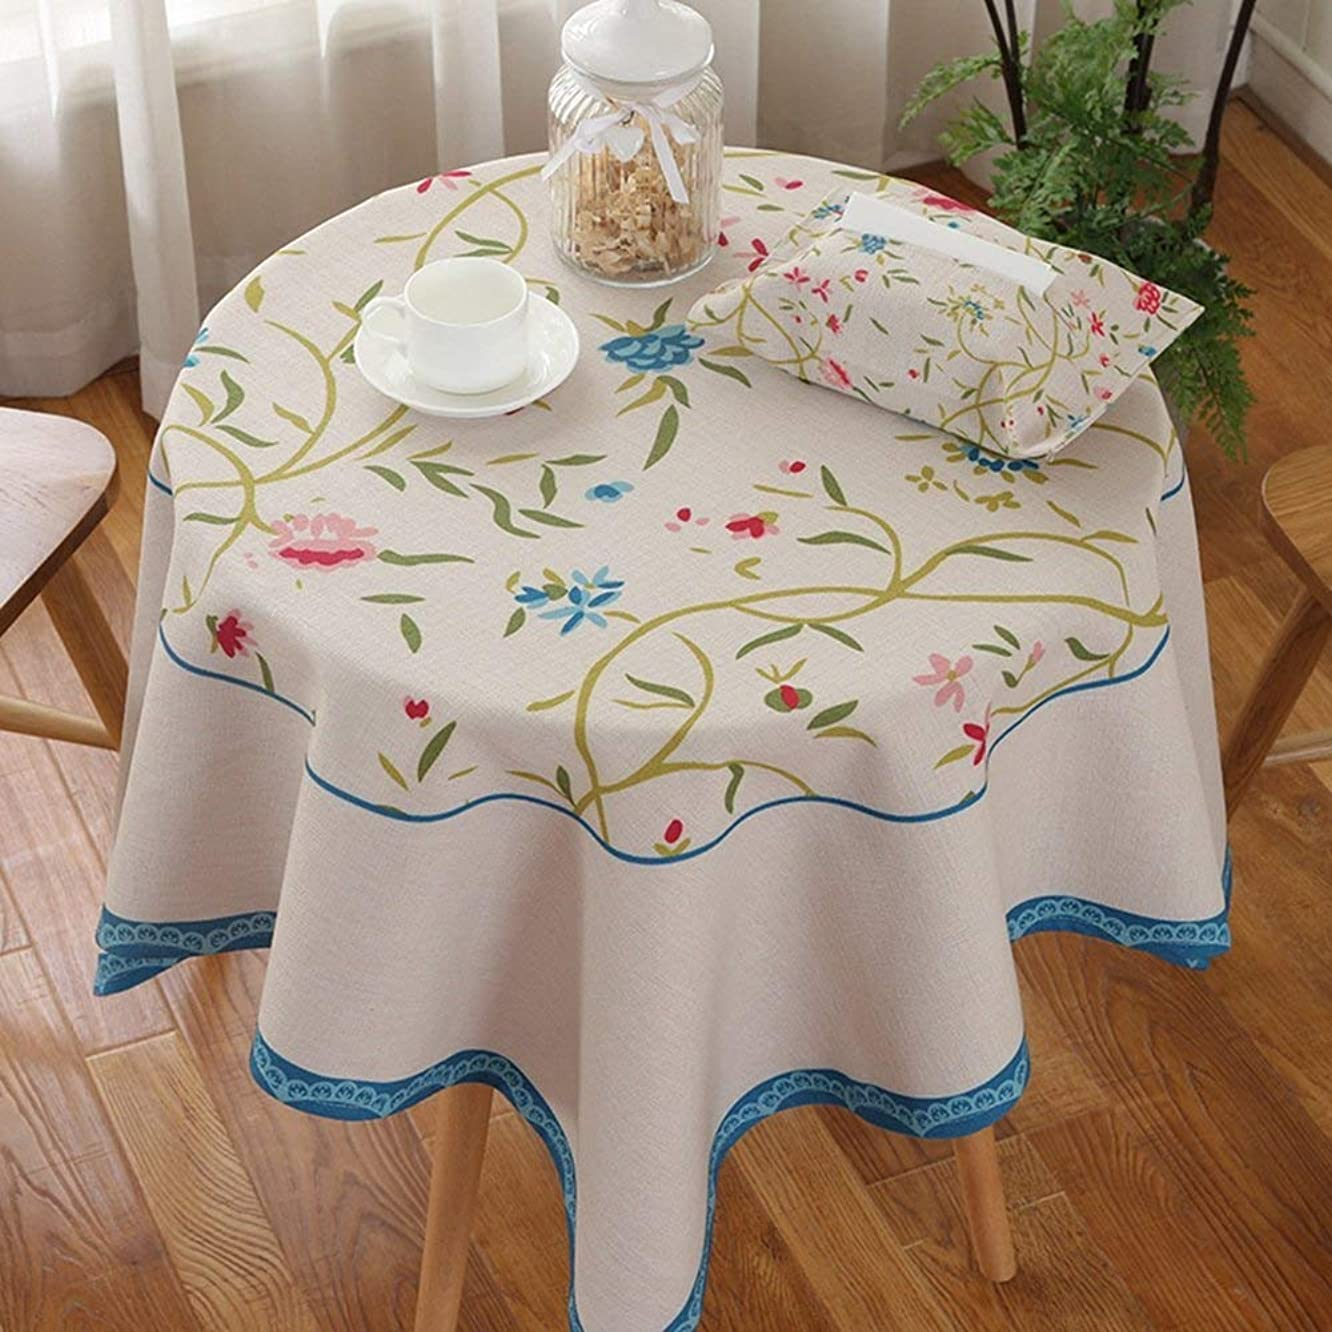 Tablecloth Table Cover Art Fresh Wallpaper Cloth Linen Tablecloth Square Coffee Table Cover Cloth Table Dust Tablecloth Single Square Tablecloth for Wedding Restaurant Party Indoor Kitchen Picnic , Q